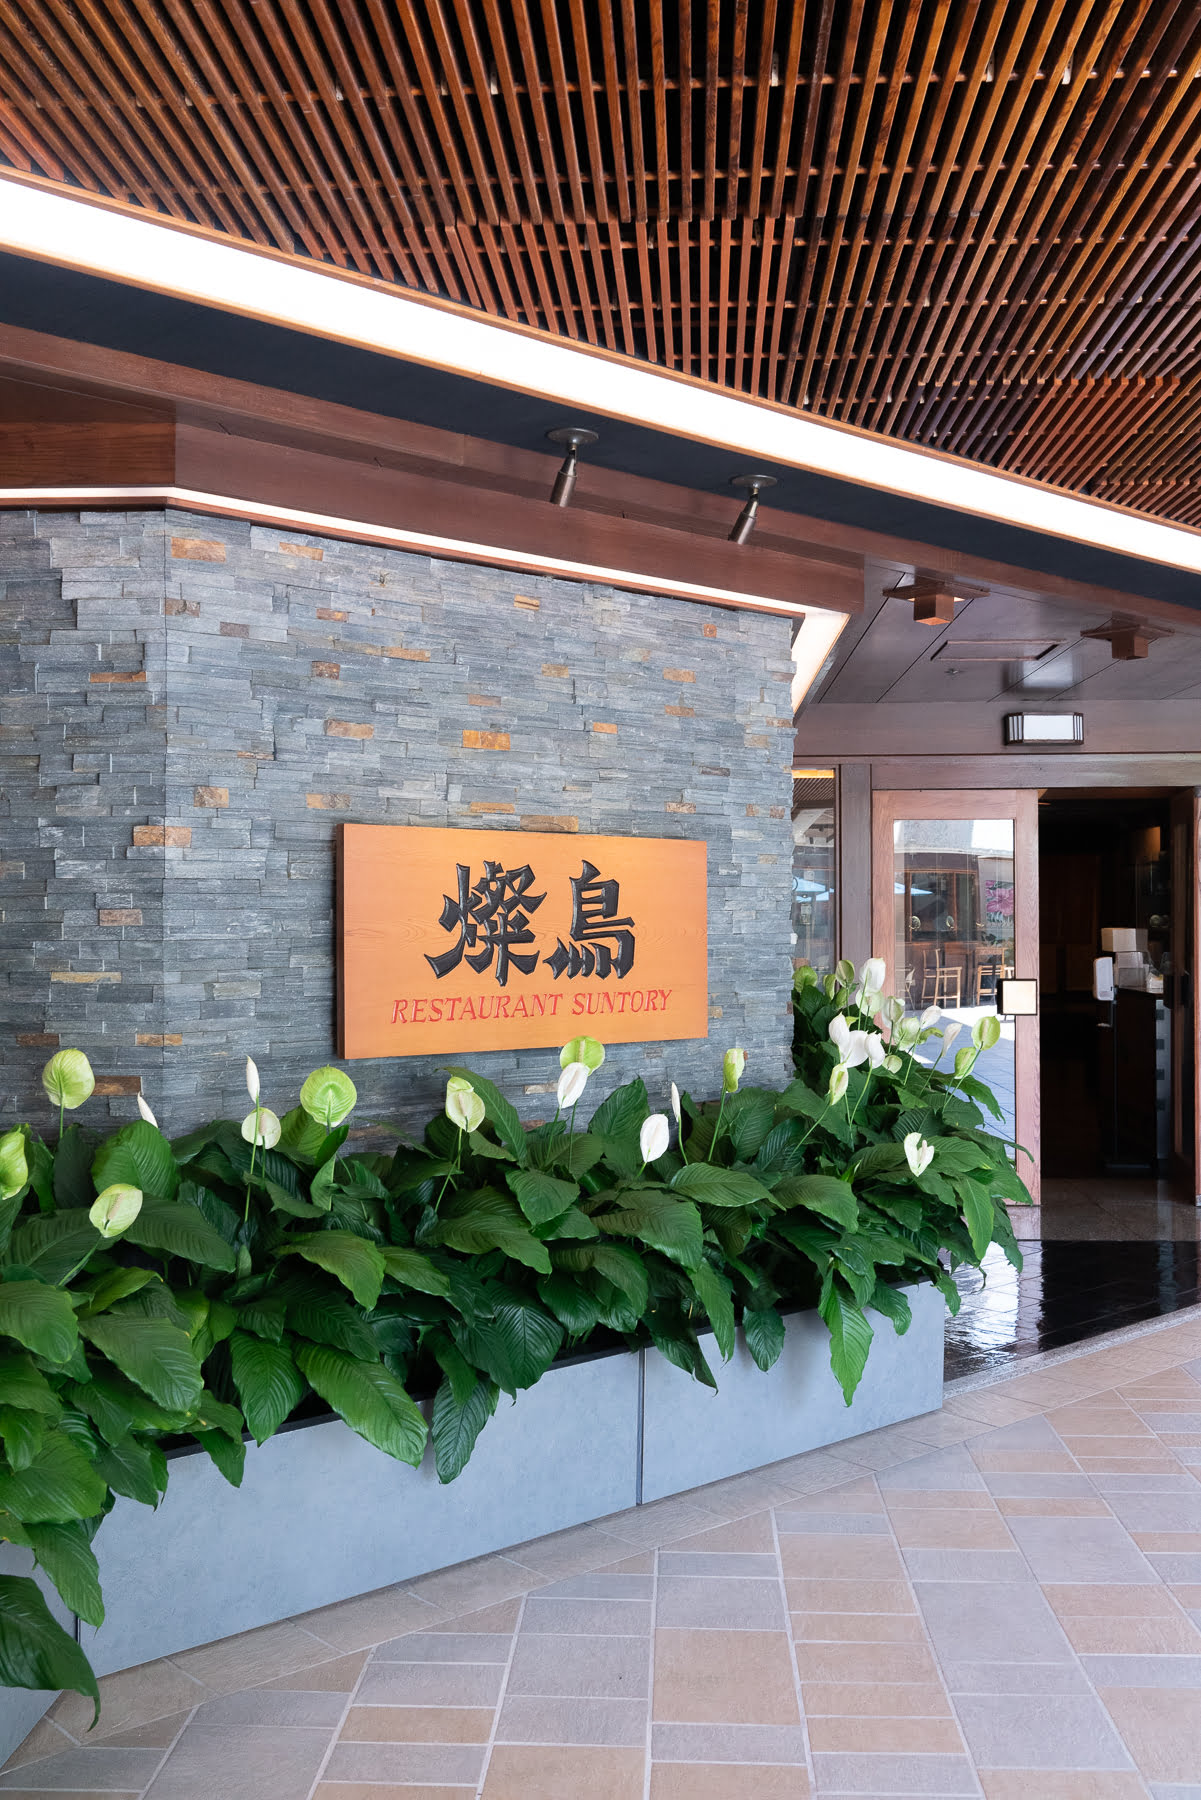 Entrance to Restaurant Suntory.